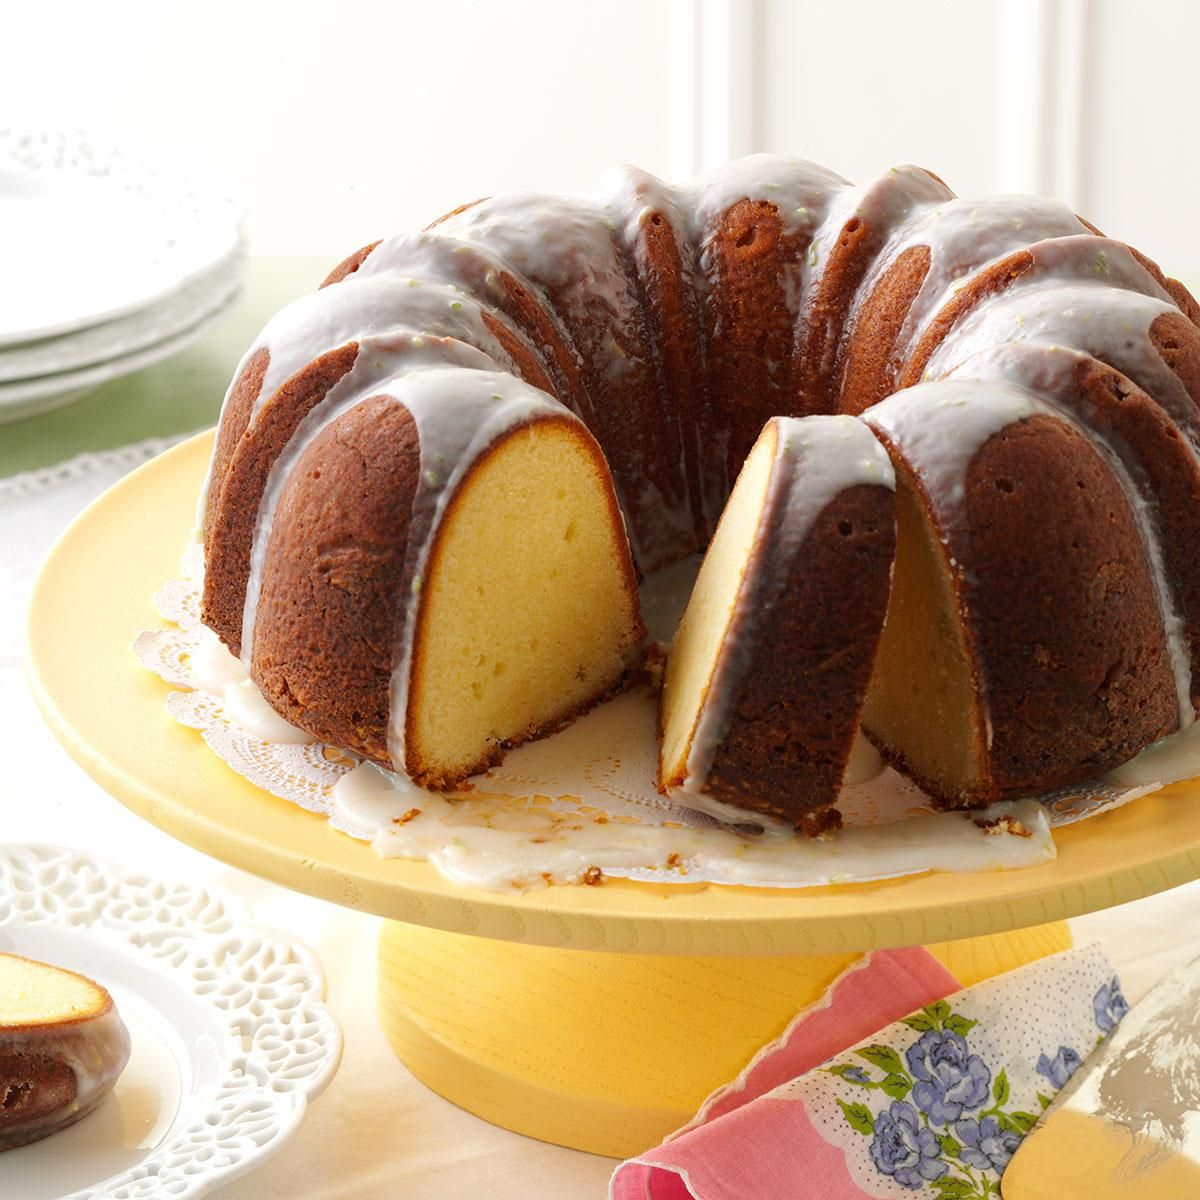 7up Pound Cake Recipe Pound Cake Recipes 7up Pound Cake Savoury Cake